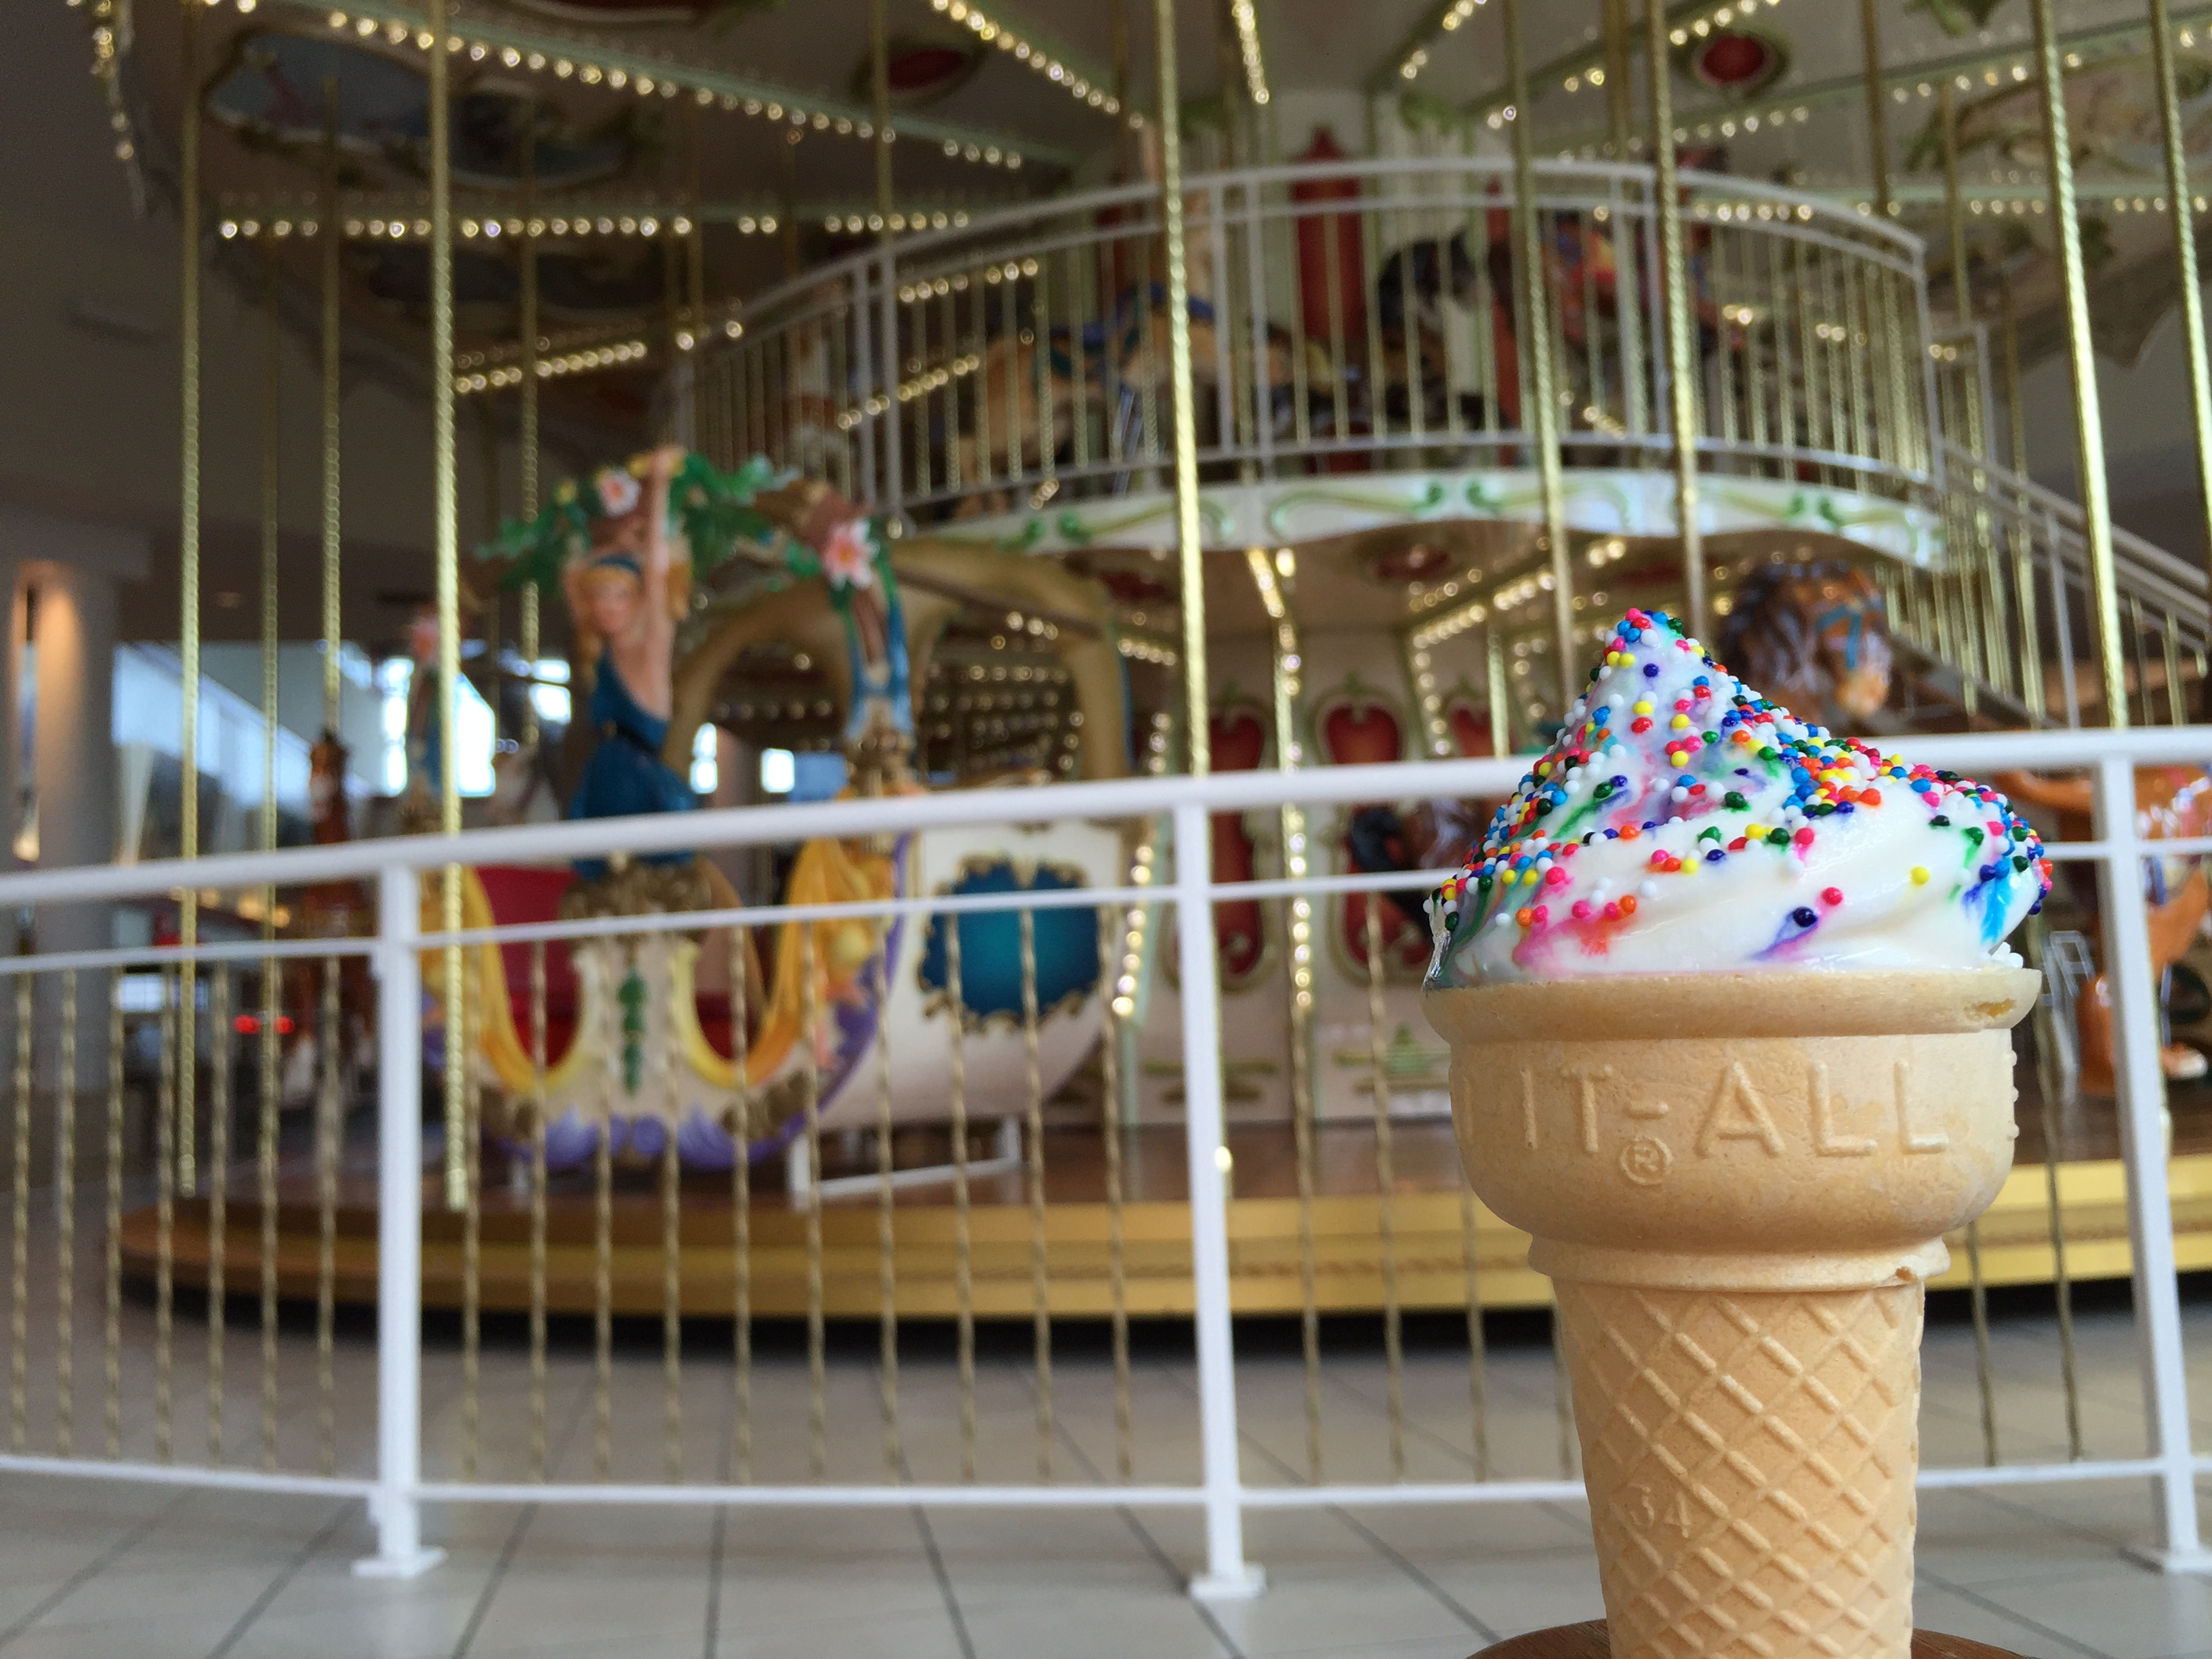 ice cream cone with sprinkles in front of a carousel